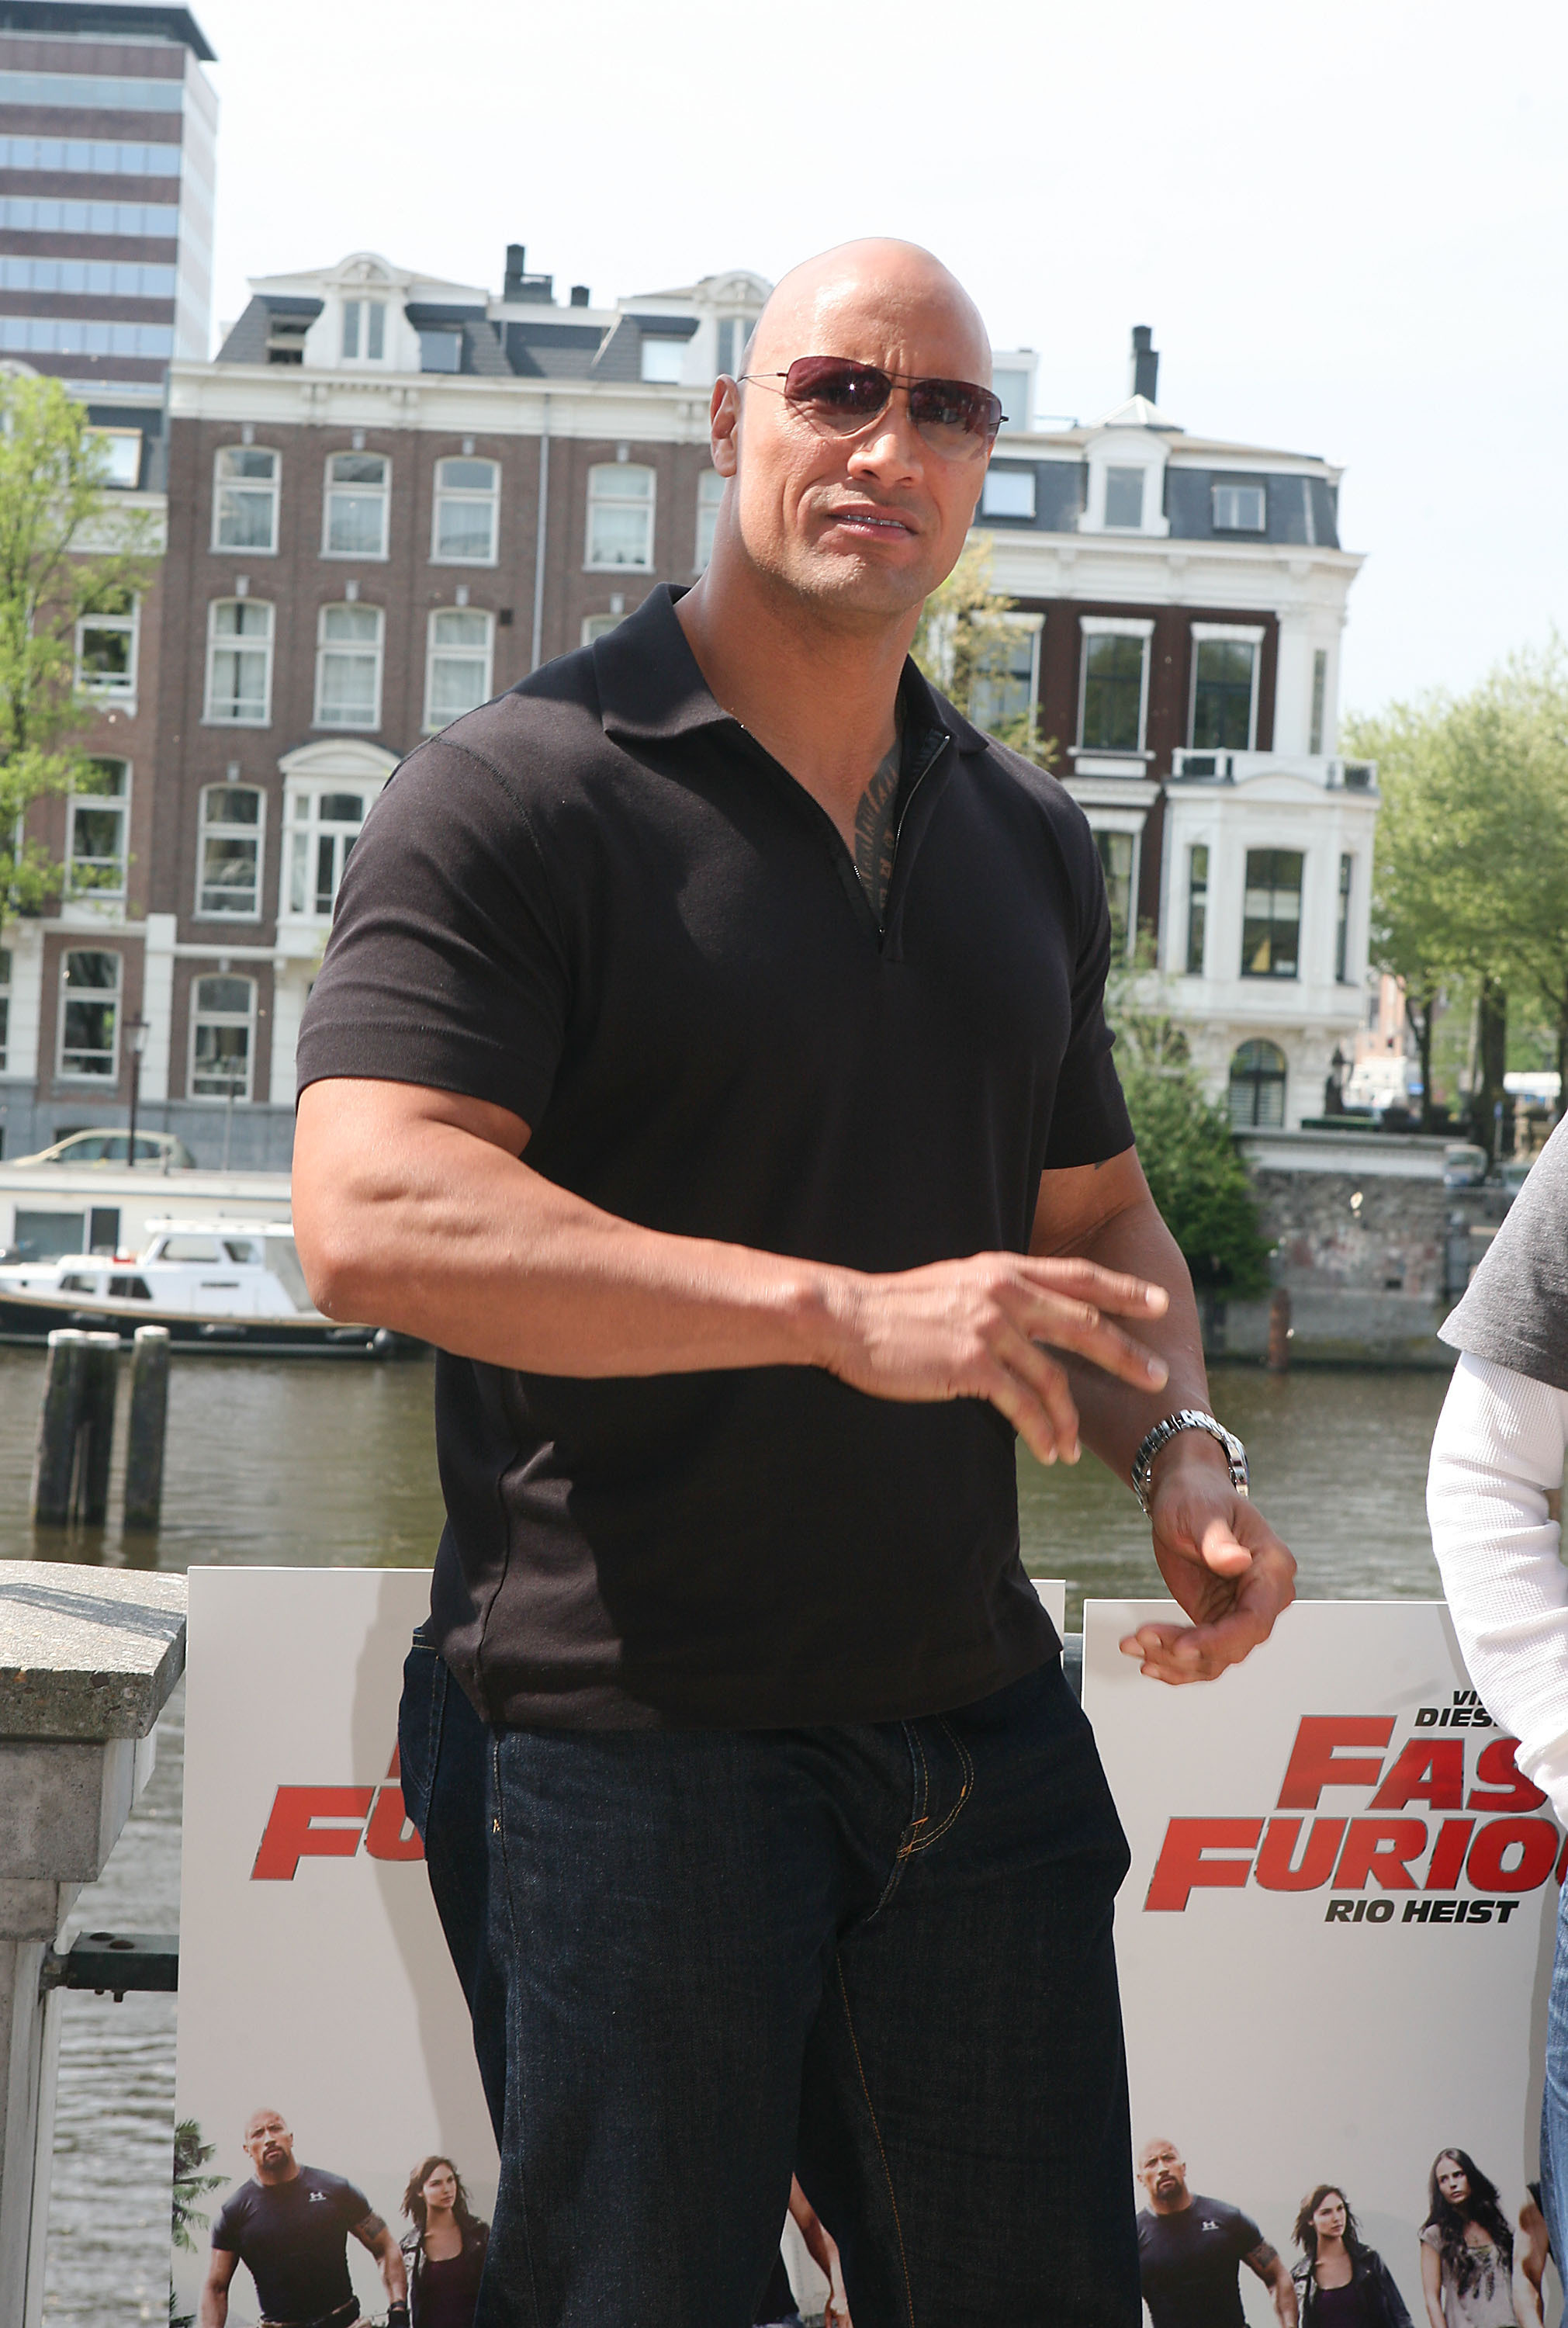 "Dwayne Johnson, aka The Rock                                   attends a Photocall for ""Fast & Furious 5: Rio Heist""                                   outside the Pathe Arena                                   Amsterdam, Netherlands - 26.04.11                                                                      Featuring: Dwayne Johnson, aka The Rock                                   Where: Holland                                   When: 26 Apr 2011                                   Credit: WENN"